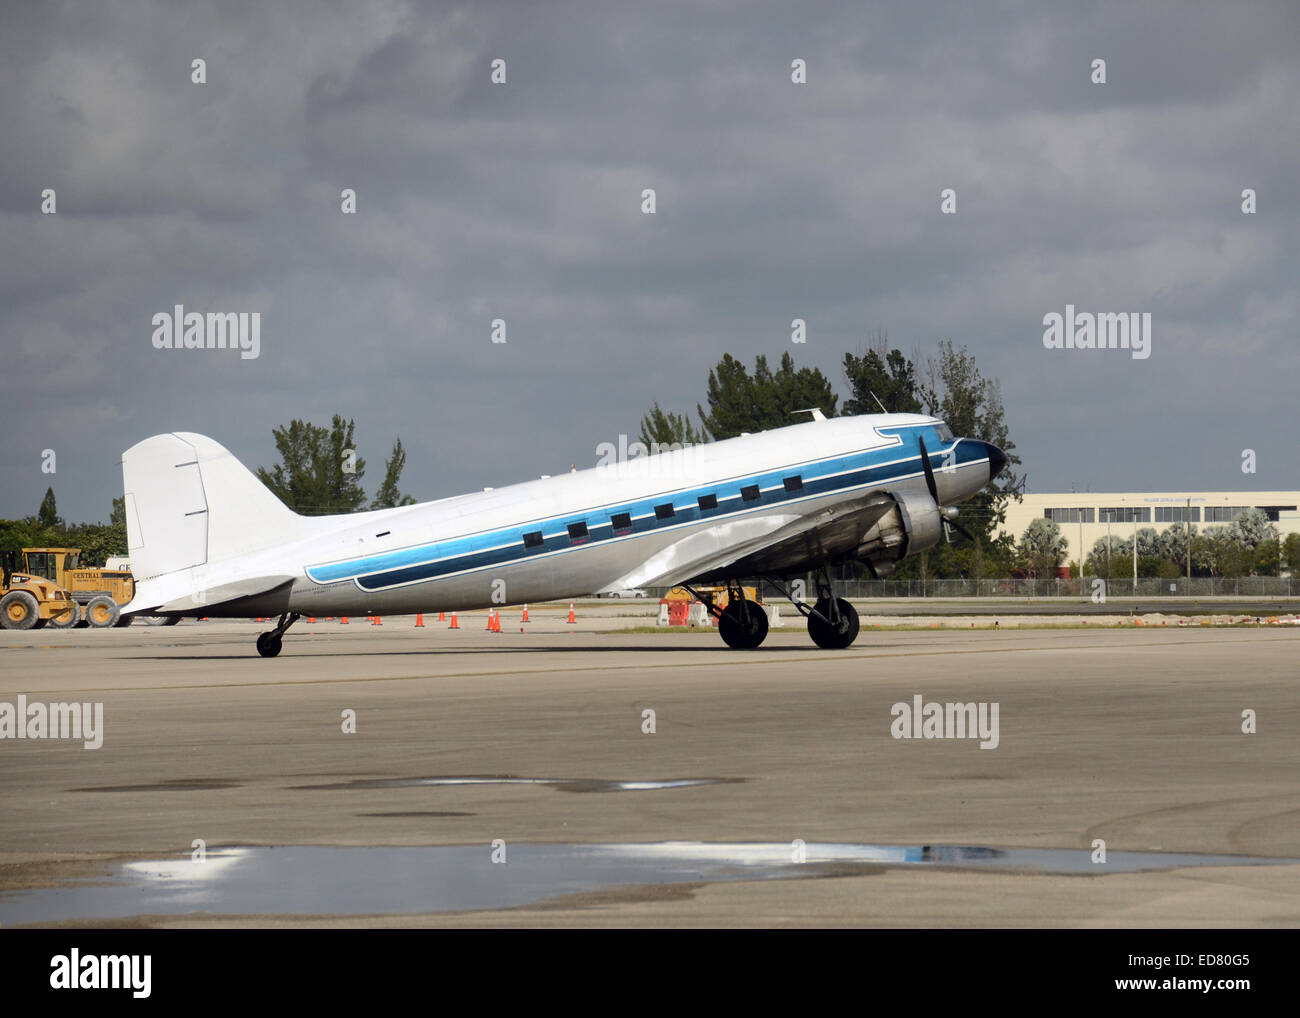 Retro DC-3 propeller airplane on the ground - Stock Image